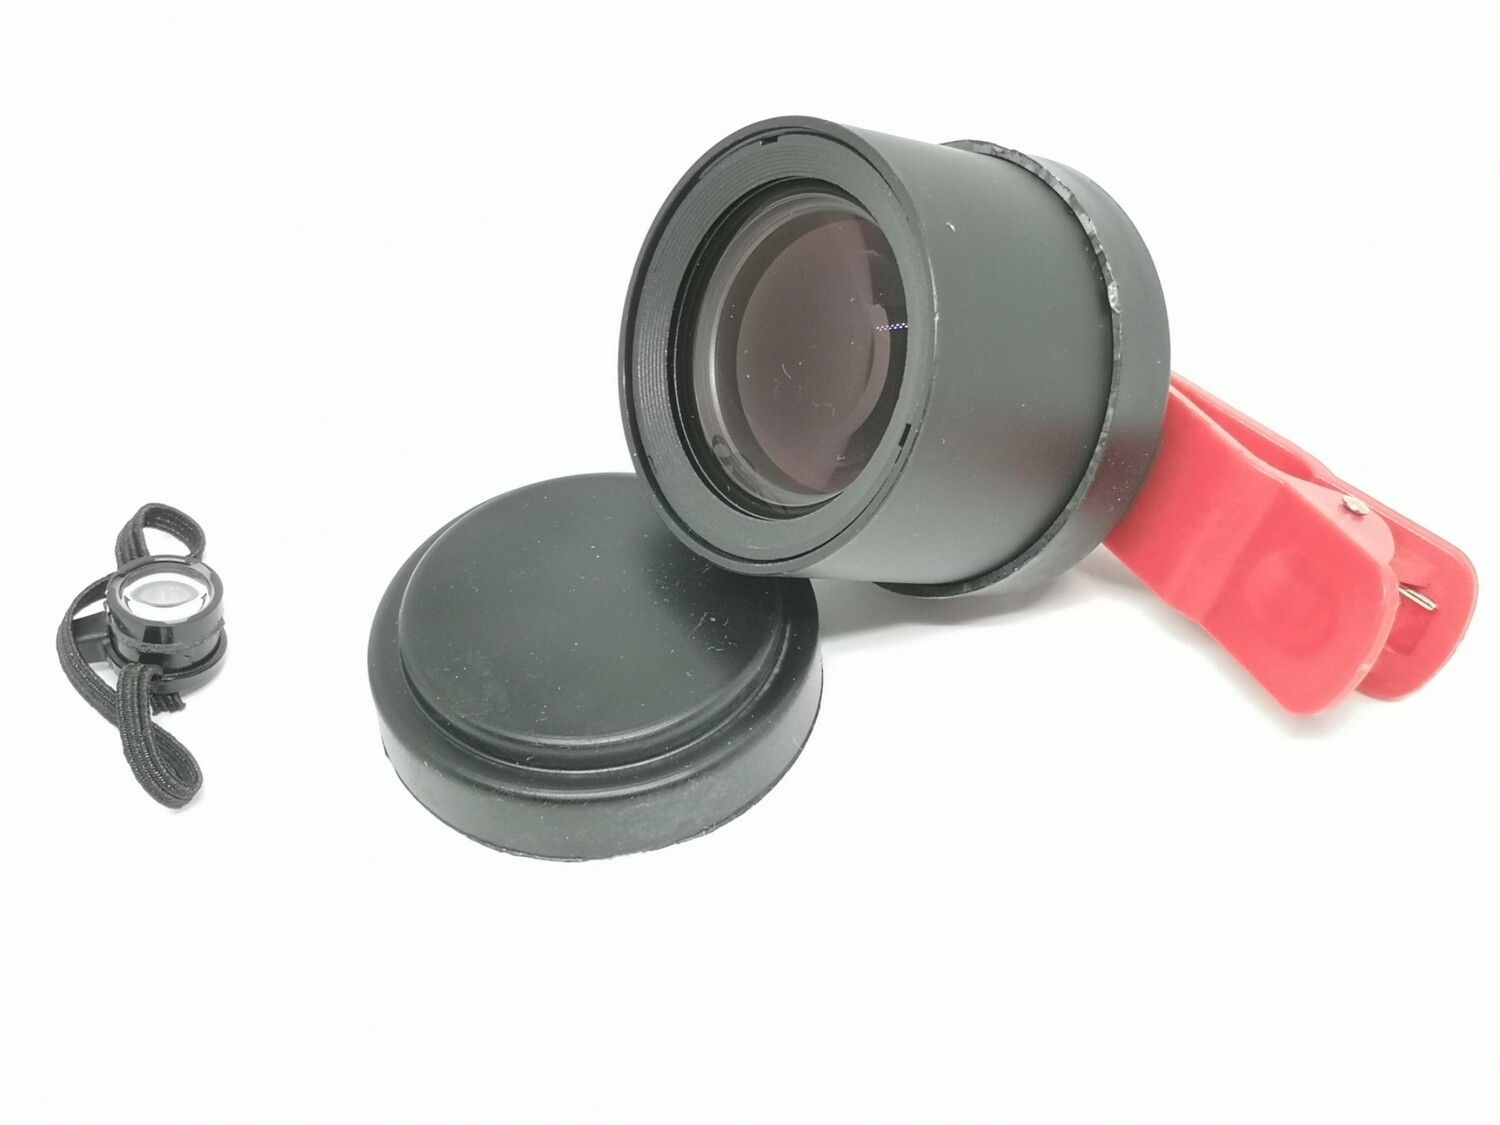 Prosumer 4.7cm Lensbong High-quality Indo Macro Phone lens [Made from Nikon L810]